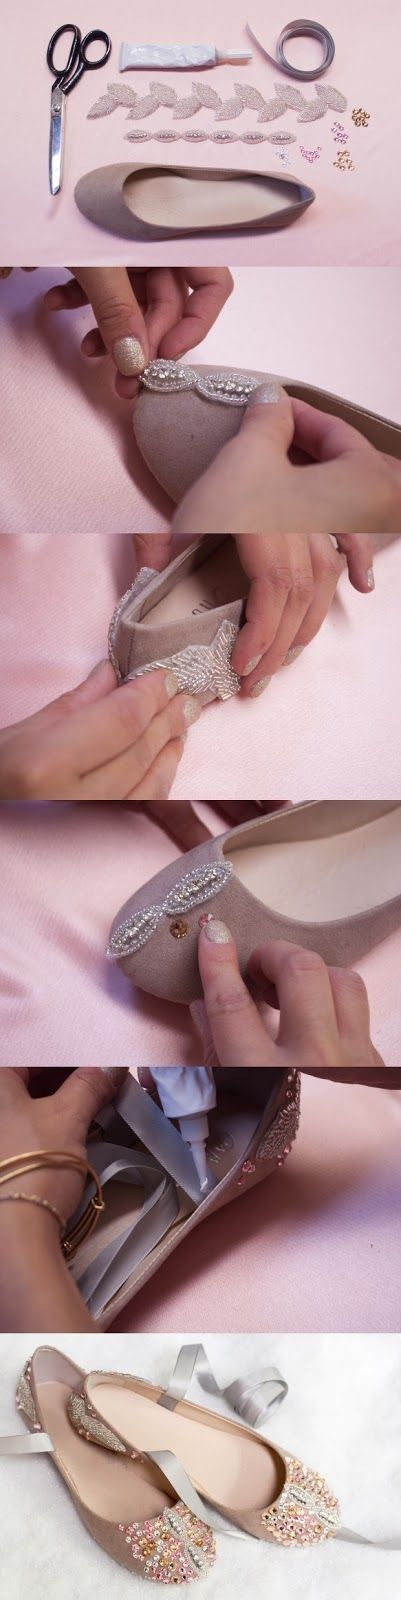 DIY New Shoes In 3-2-1